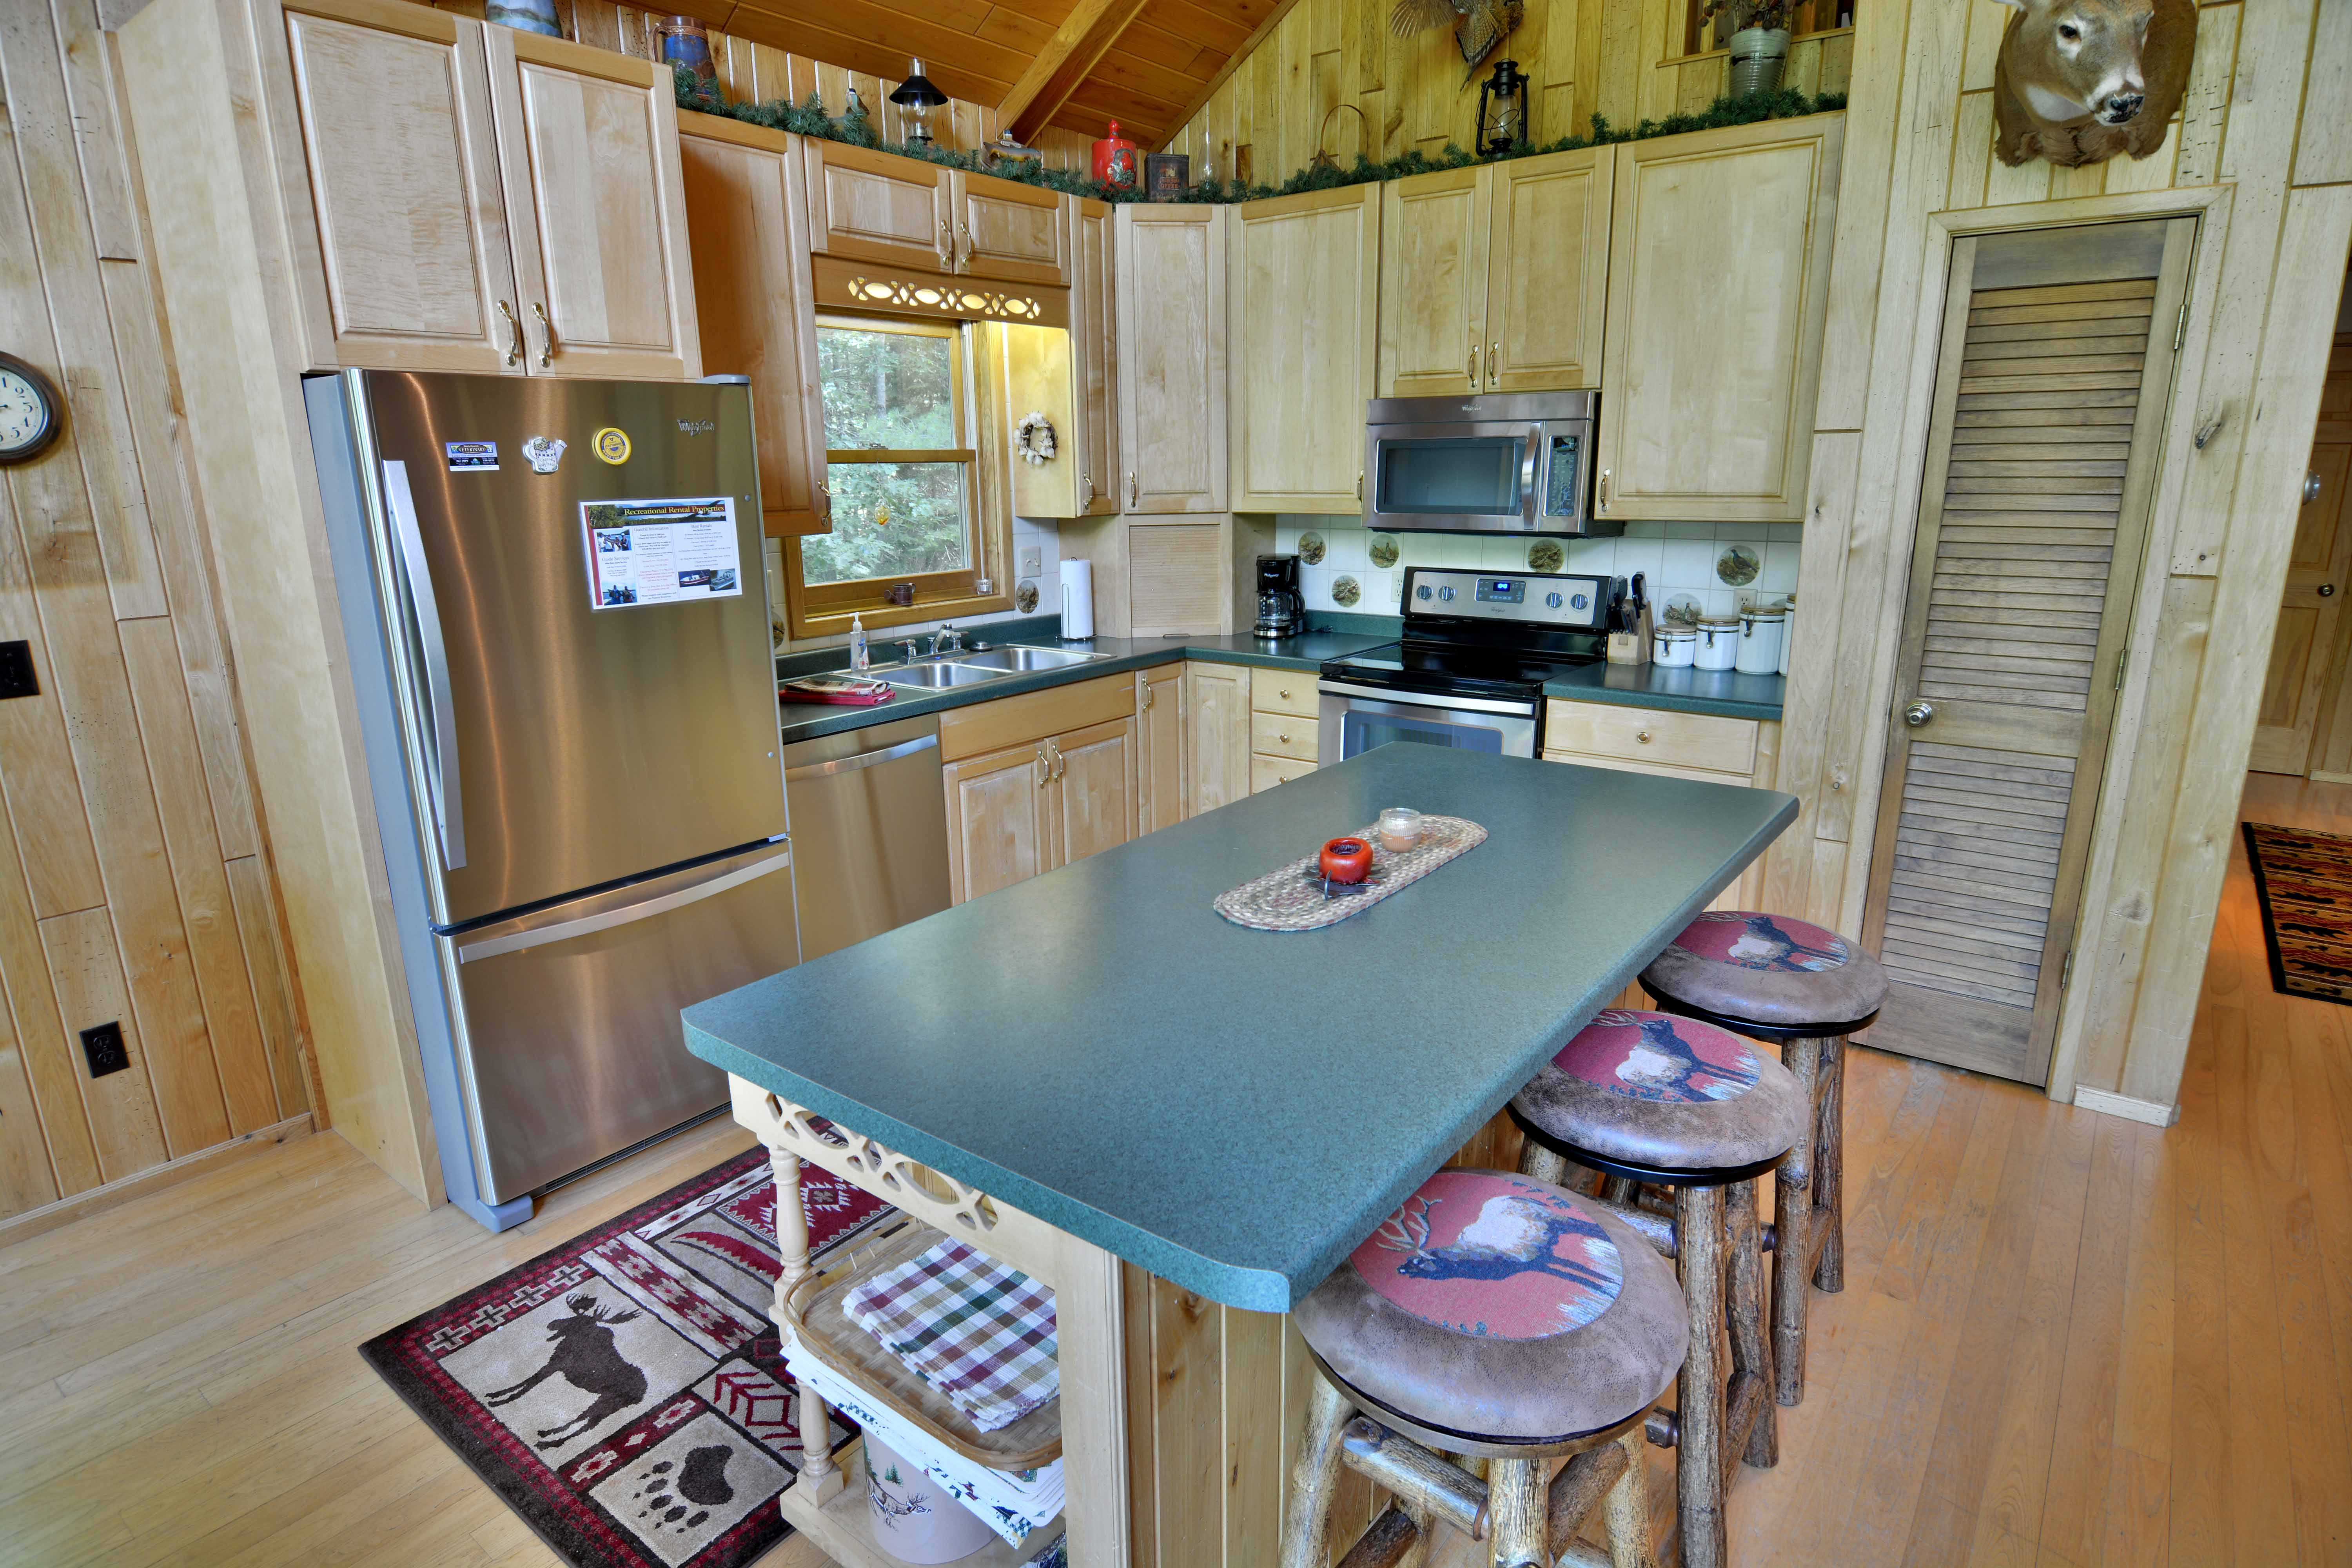 Clam Lake Wisconsin Vacation Home Rental | Clam Lake, Wisconsin